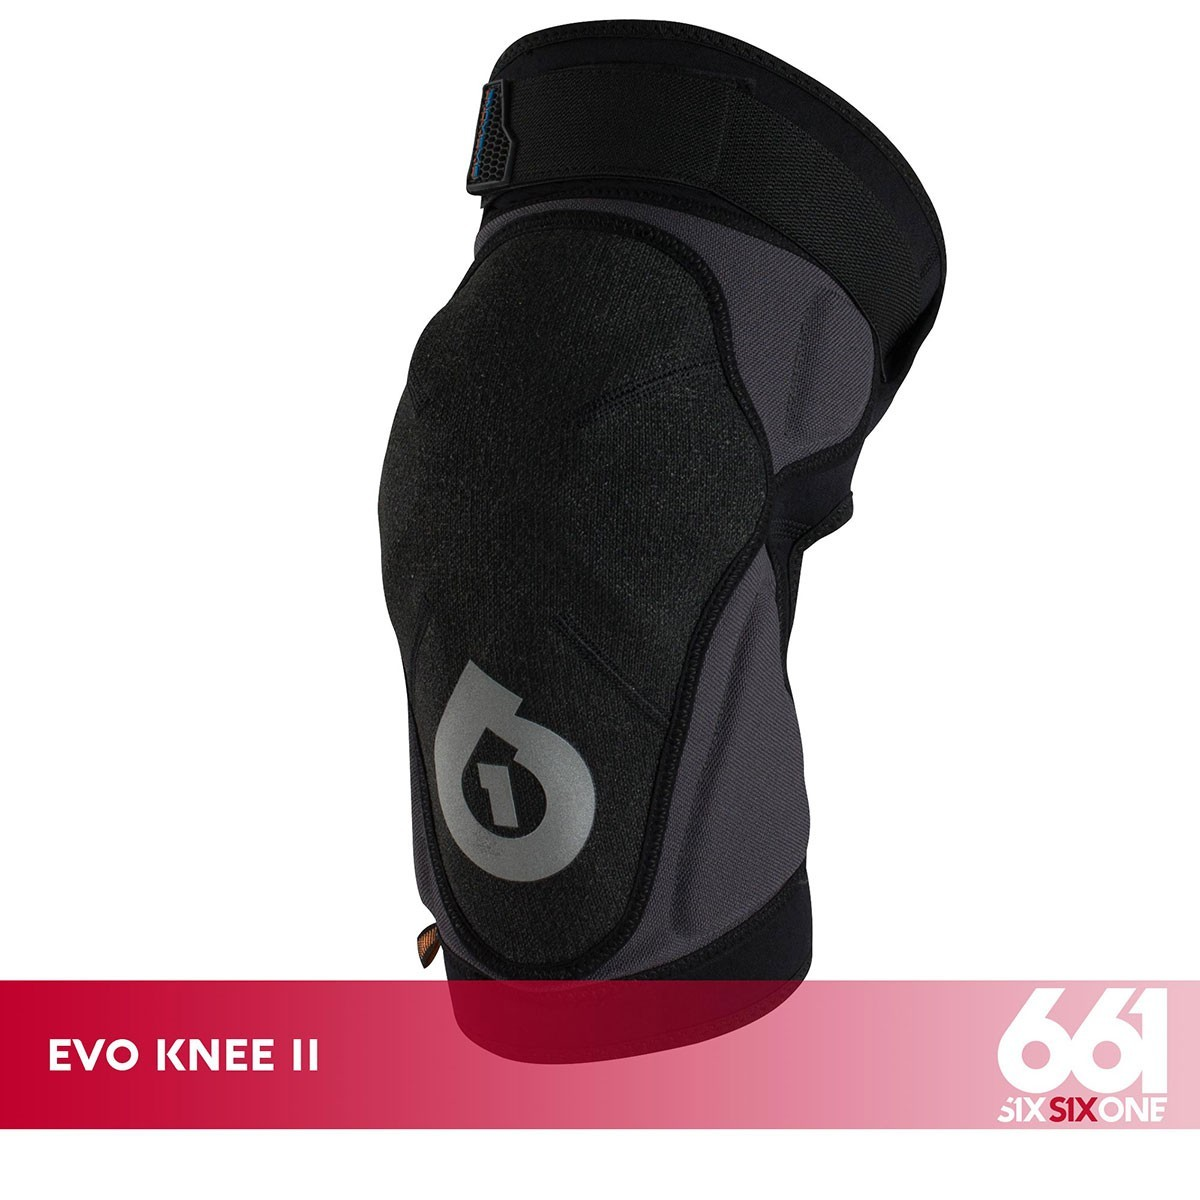 661 EVO KNEE II BLACK - Изображение - AQUAMATRIX